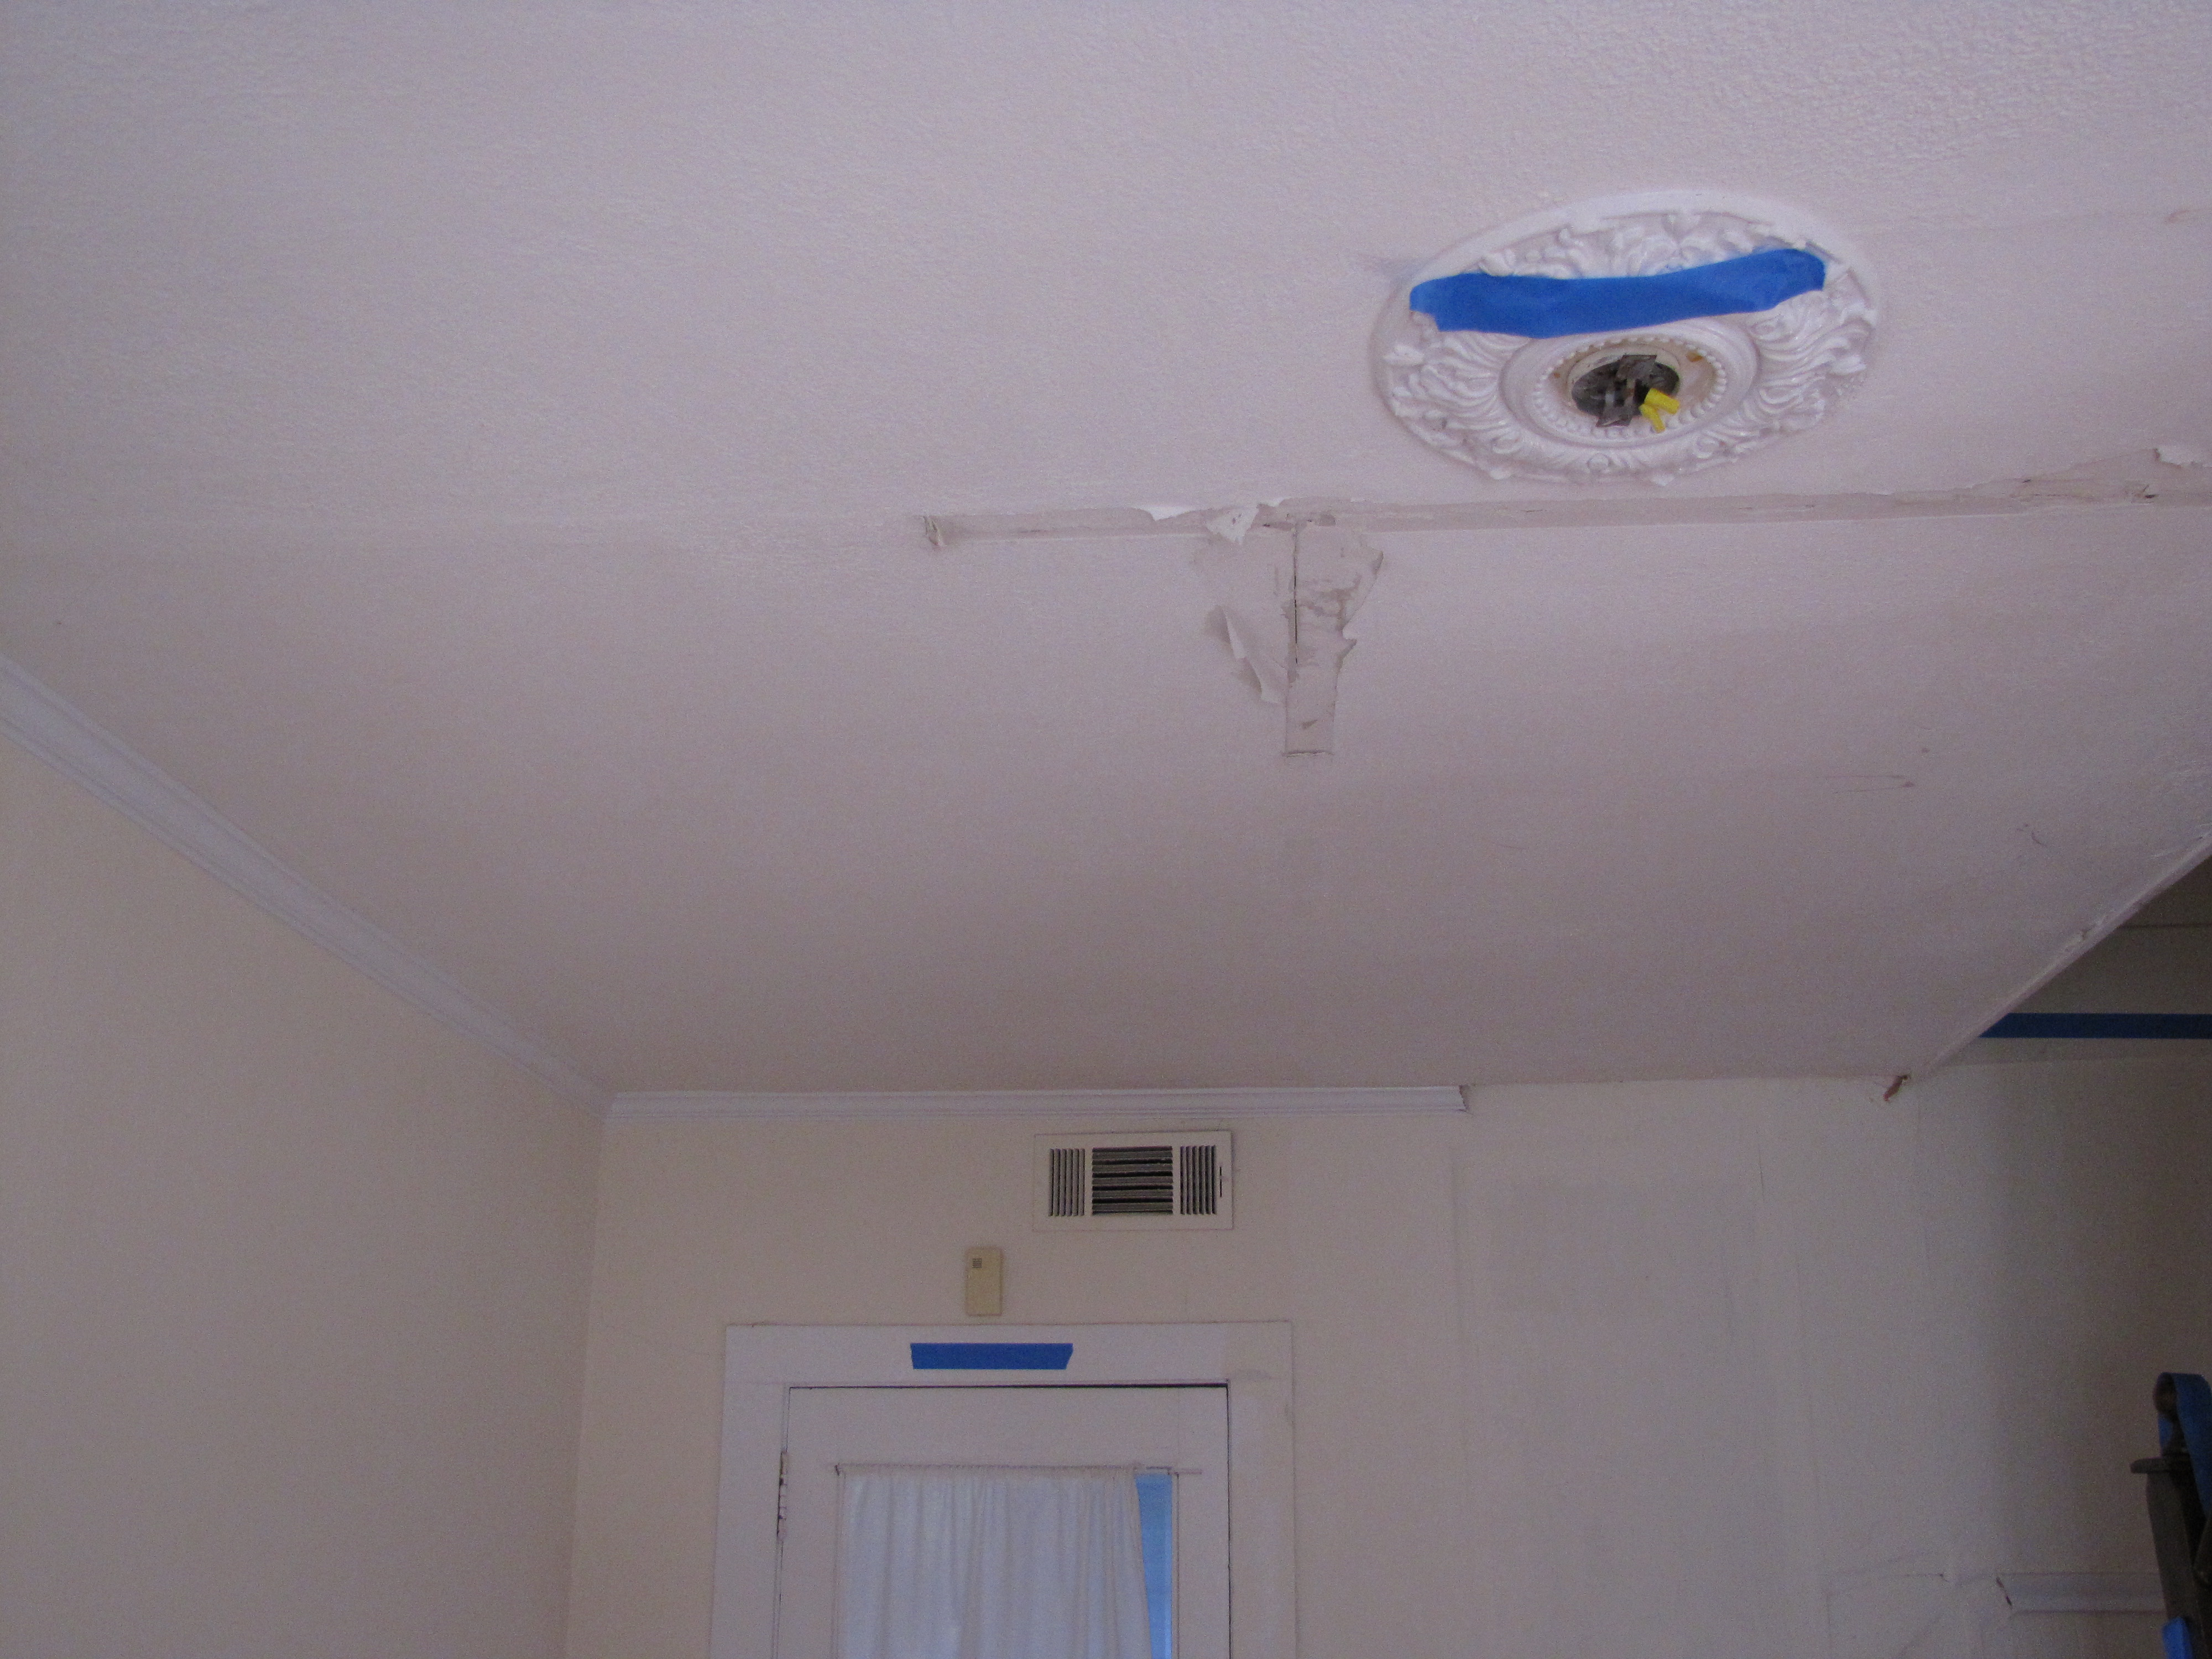 Ceiling and Missing Light Fixture of Entryway, Fac